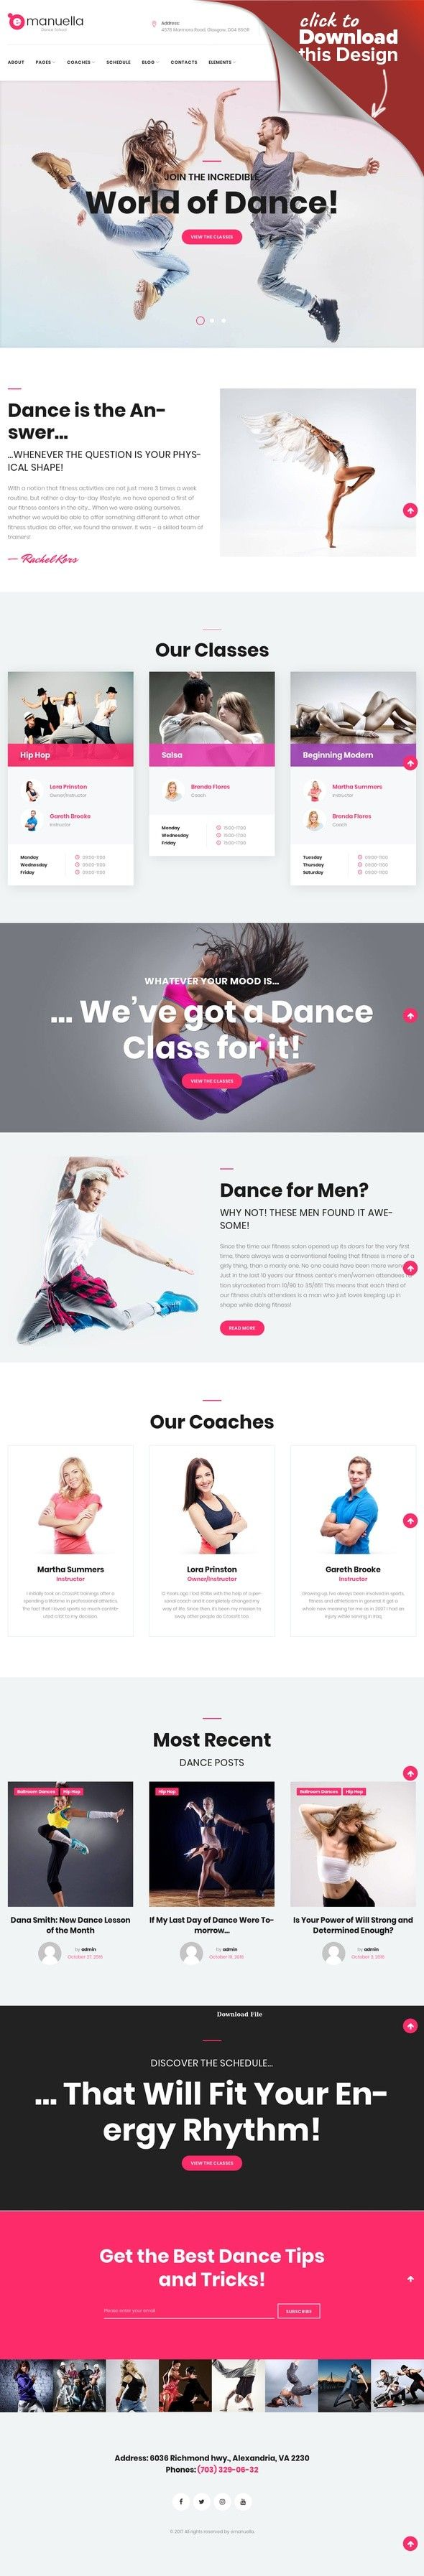 1405 best Webdesign images on Pinterest | App design, Canvases and ...